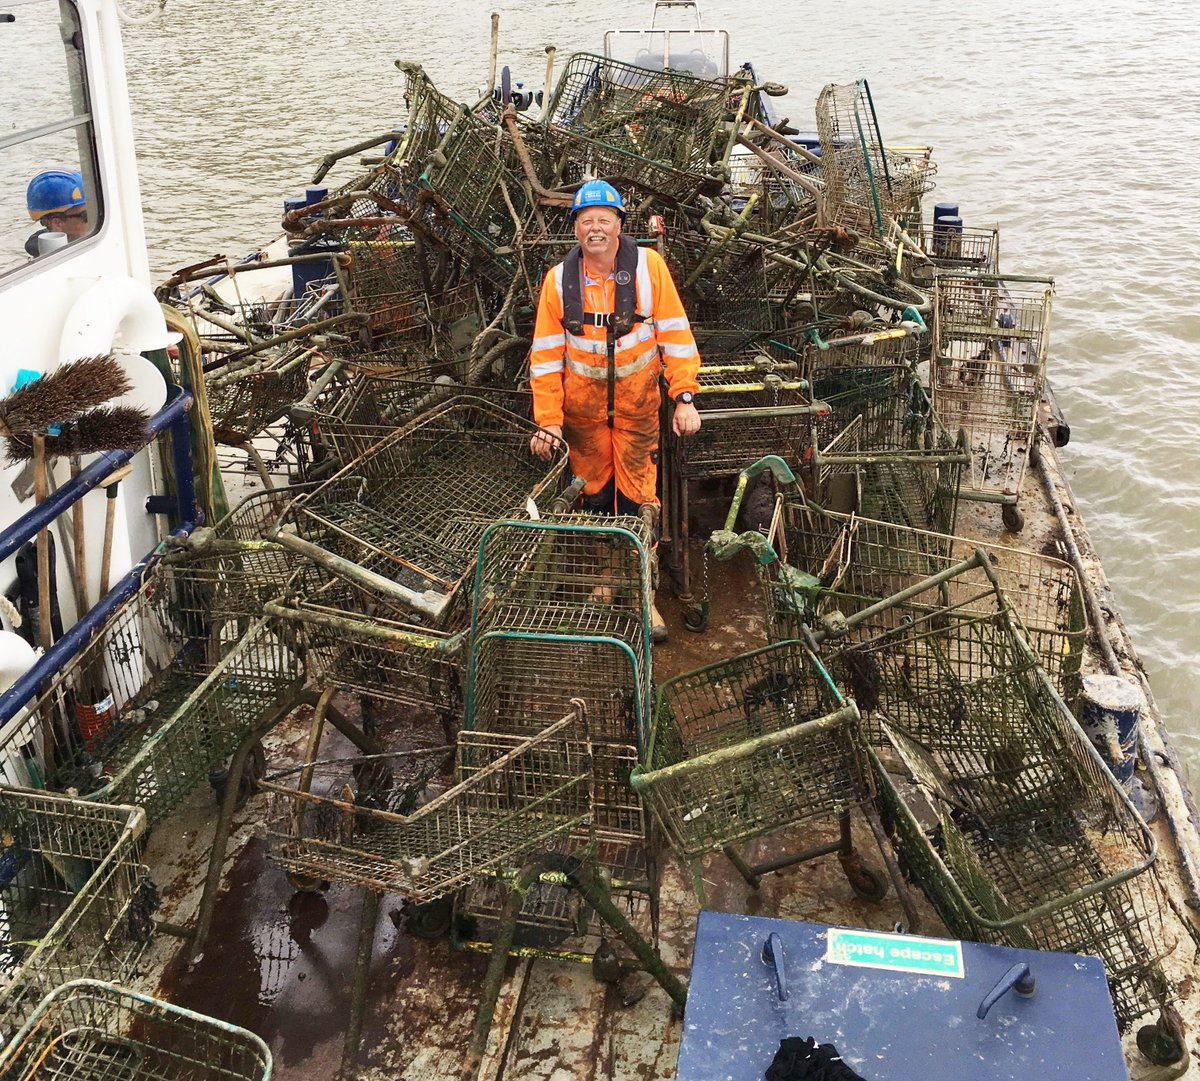 A foreshore clean-up in South London earlier this week, saw one of our crews collect nearly 70 SHOPPING TROLLEYS. Read more: http://www.pla.co.uk/Supermarket-heap-trolley-haul-uncovered-during-South-London-foreshore-clean-up …#thames #london @thameslitter